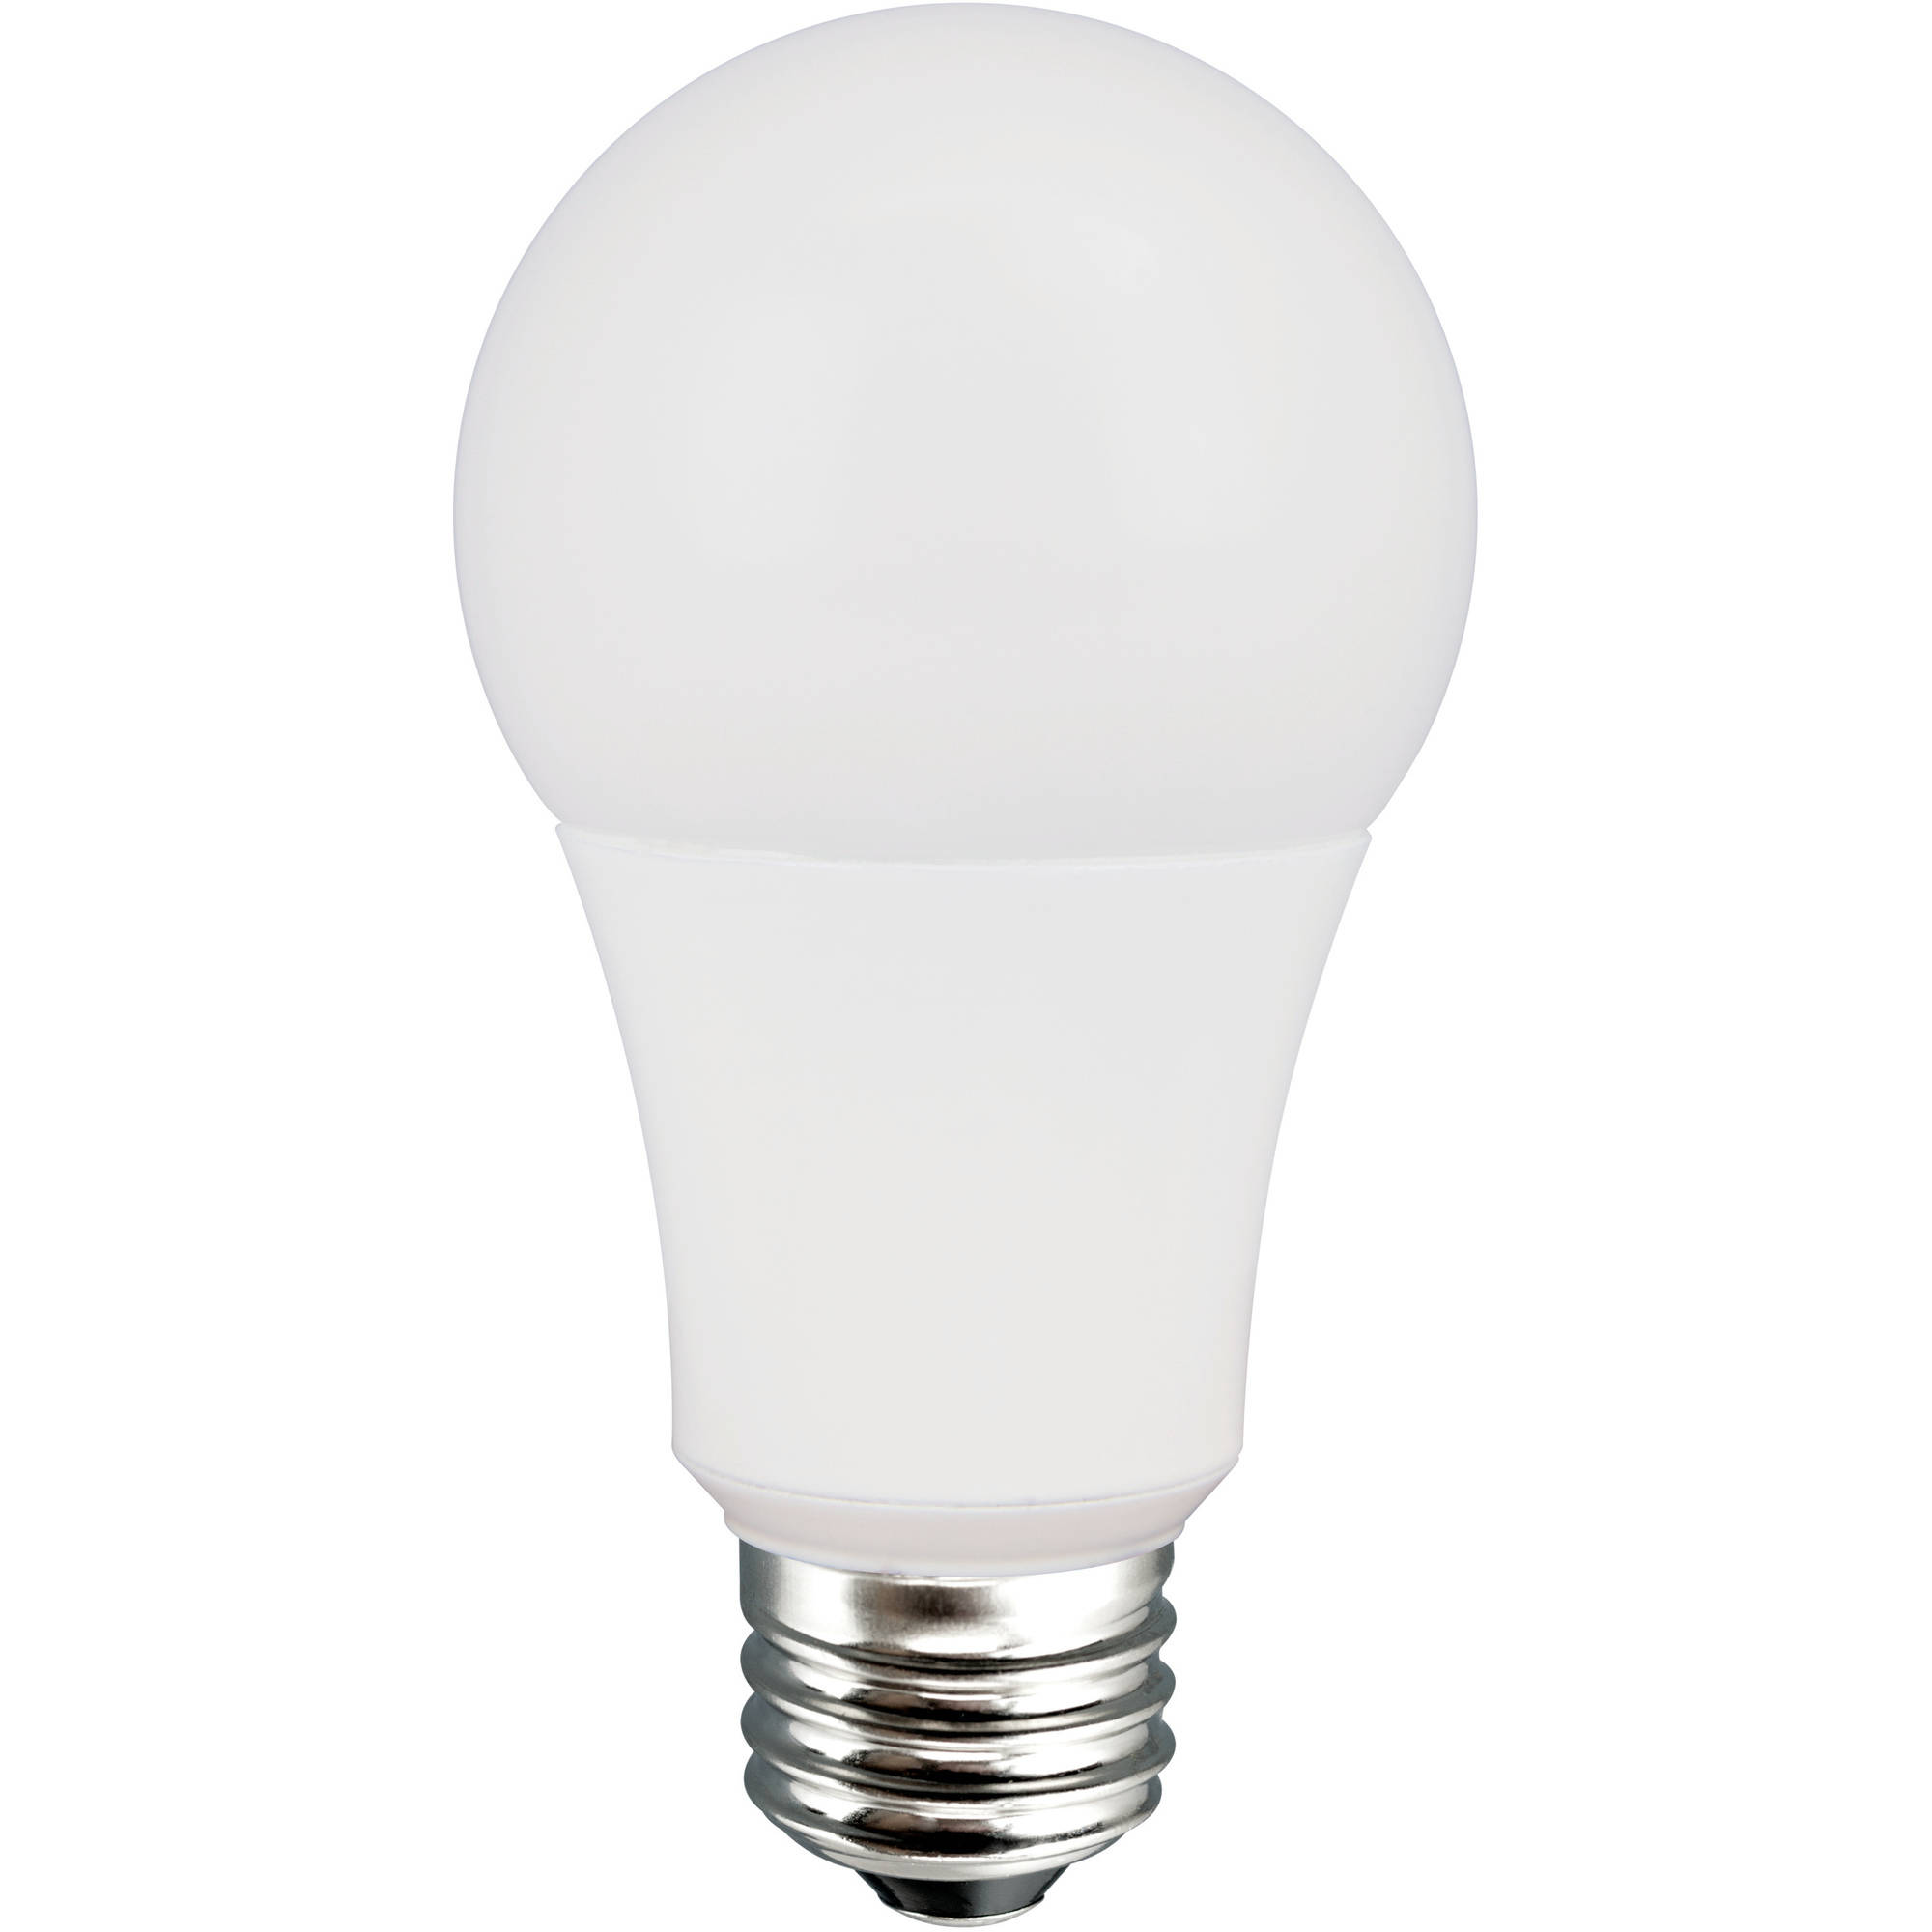 Beau Great Value LED Light Bulbs, 8.5W (60W Equivalent), Soft White, 4 Count    Walmart.com